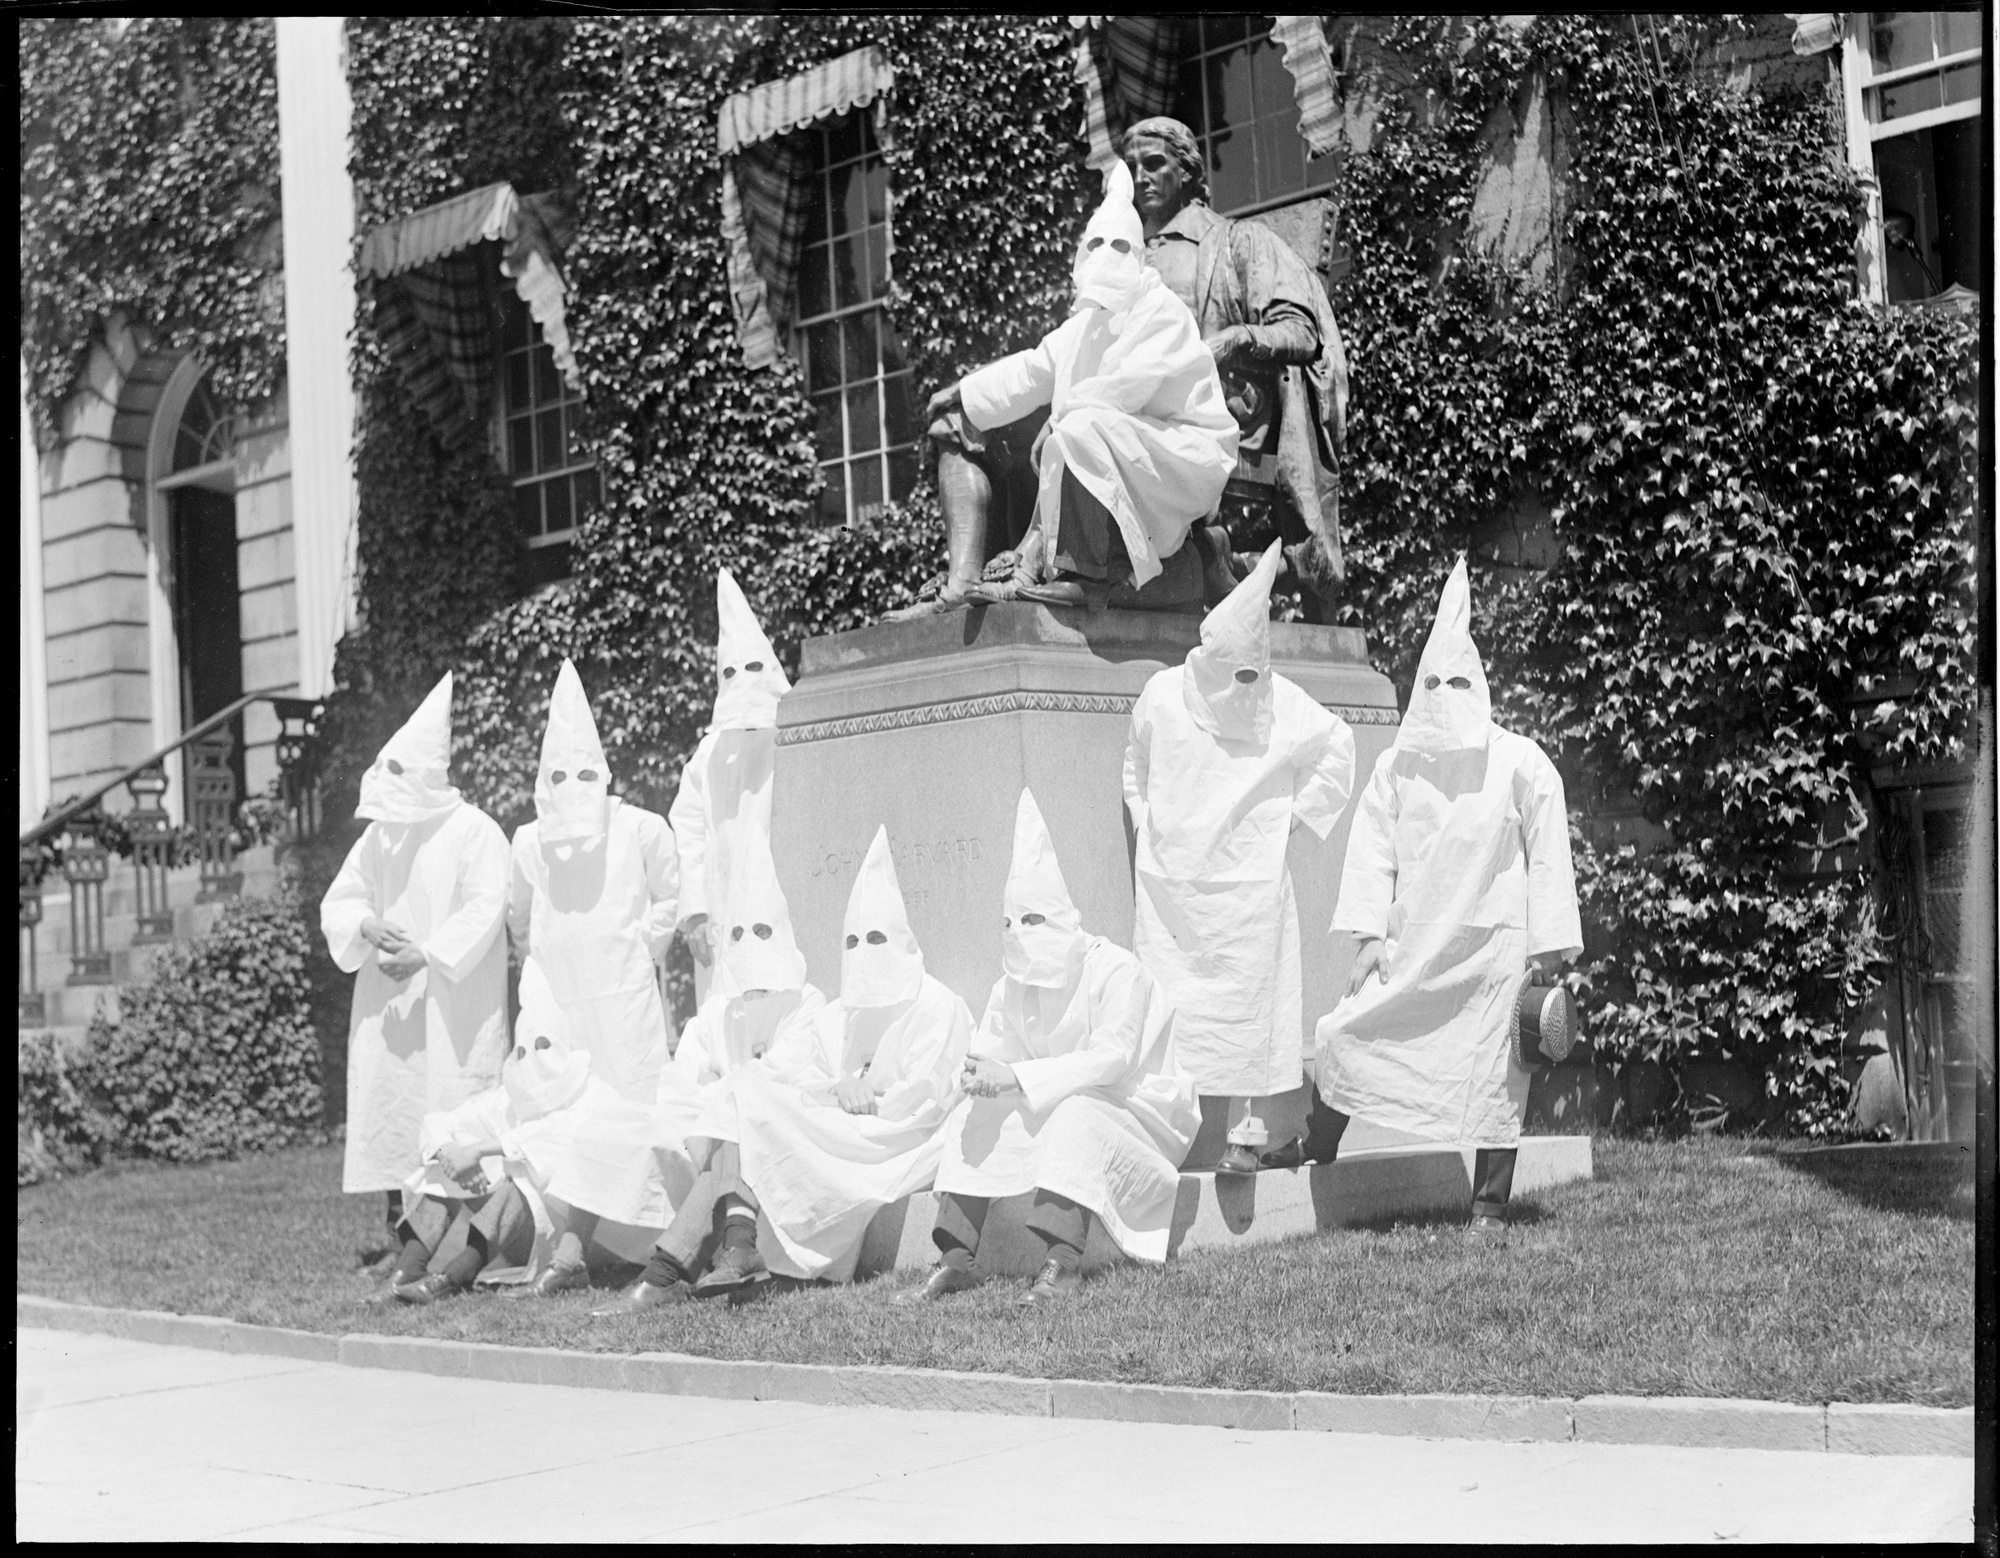 Members of the Harvard branch of the Ku Klux Klan pose for a graduation photo on Class Day 1924 at the foot of the John Harvard Statue in Harvard Yard.